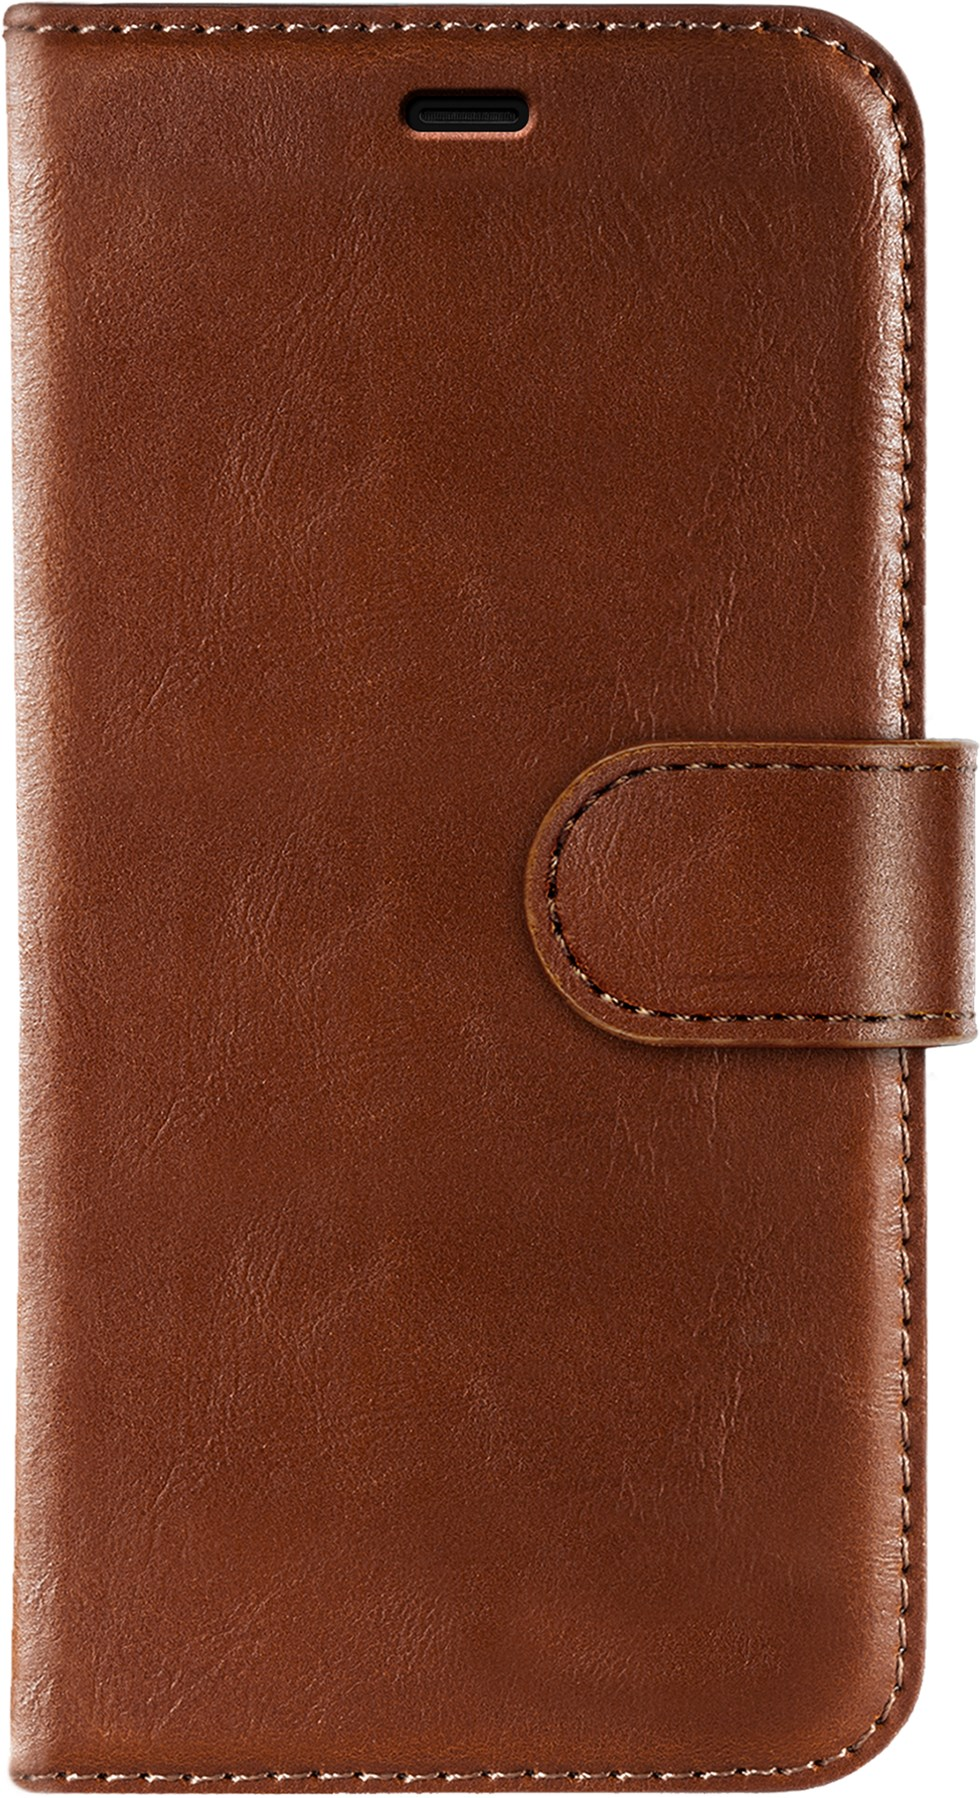 iDeal of Sweden Ideal Magnet Wallet + Iphone 11 Brown